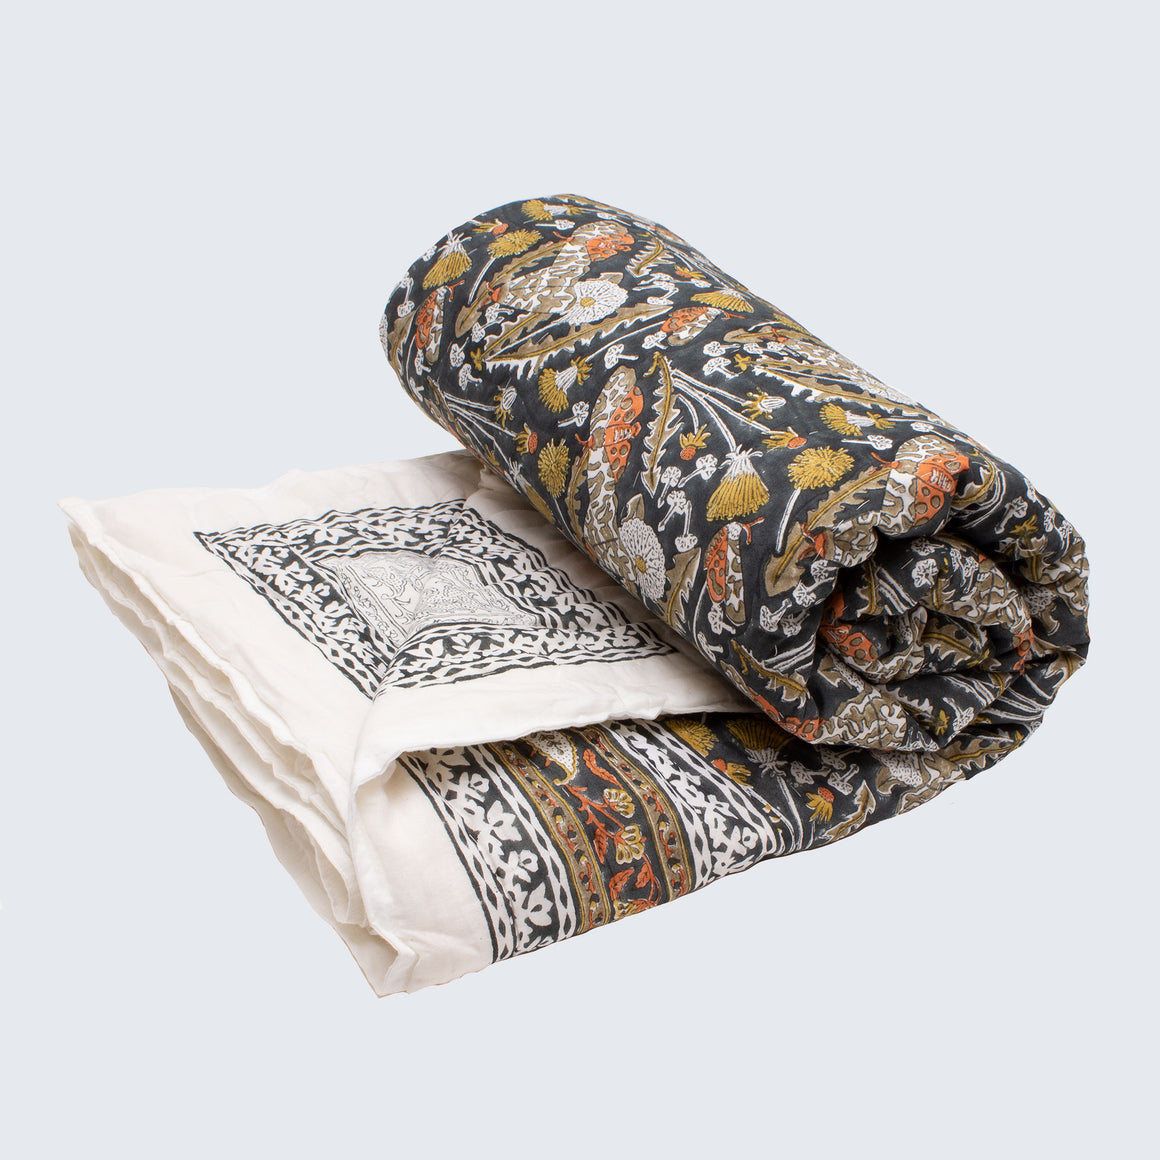 Indian Kantha Queen/Large Double Sized Quilt 'Garden Tiger Moth'